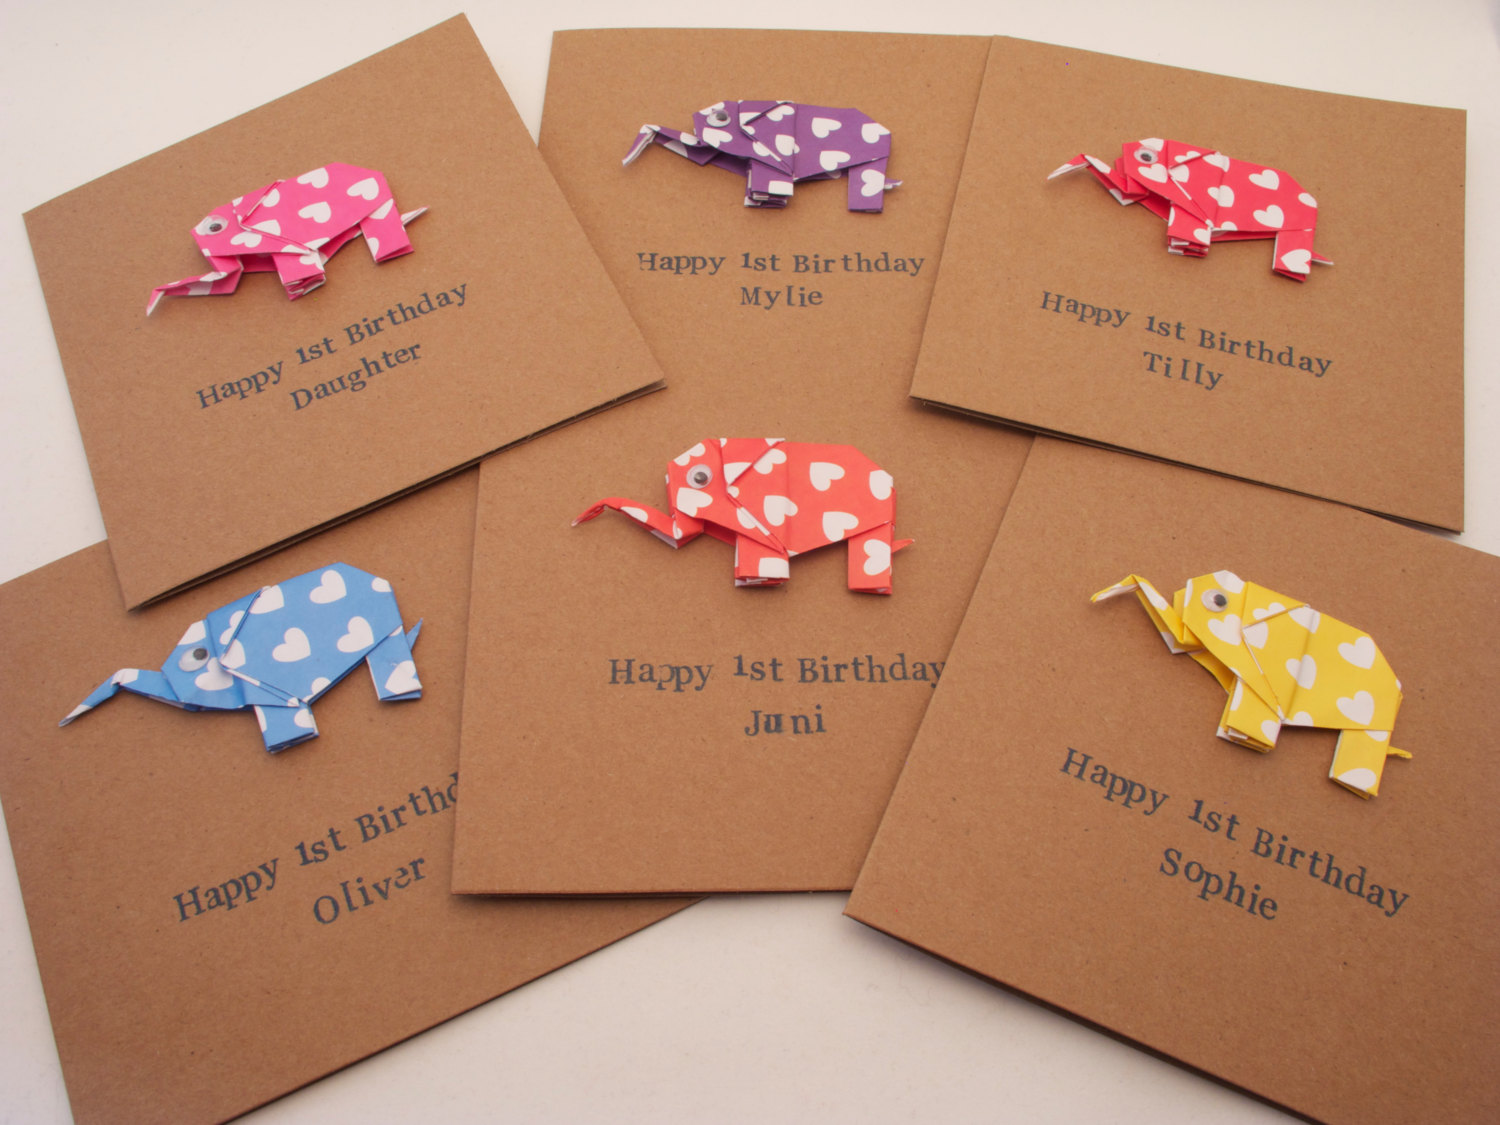 origami birthday card instructions ; origami-dress-cards-origami-greeting-cards-chie-no-wa-products-origami-birthday-card-easy-origami-birthday-card-youtube